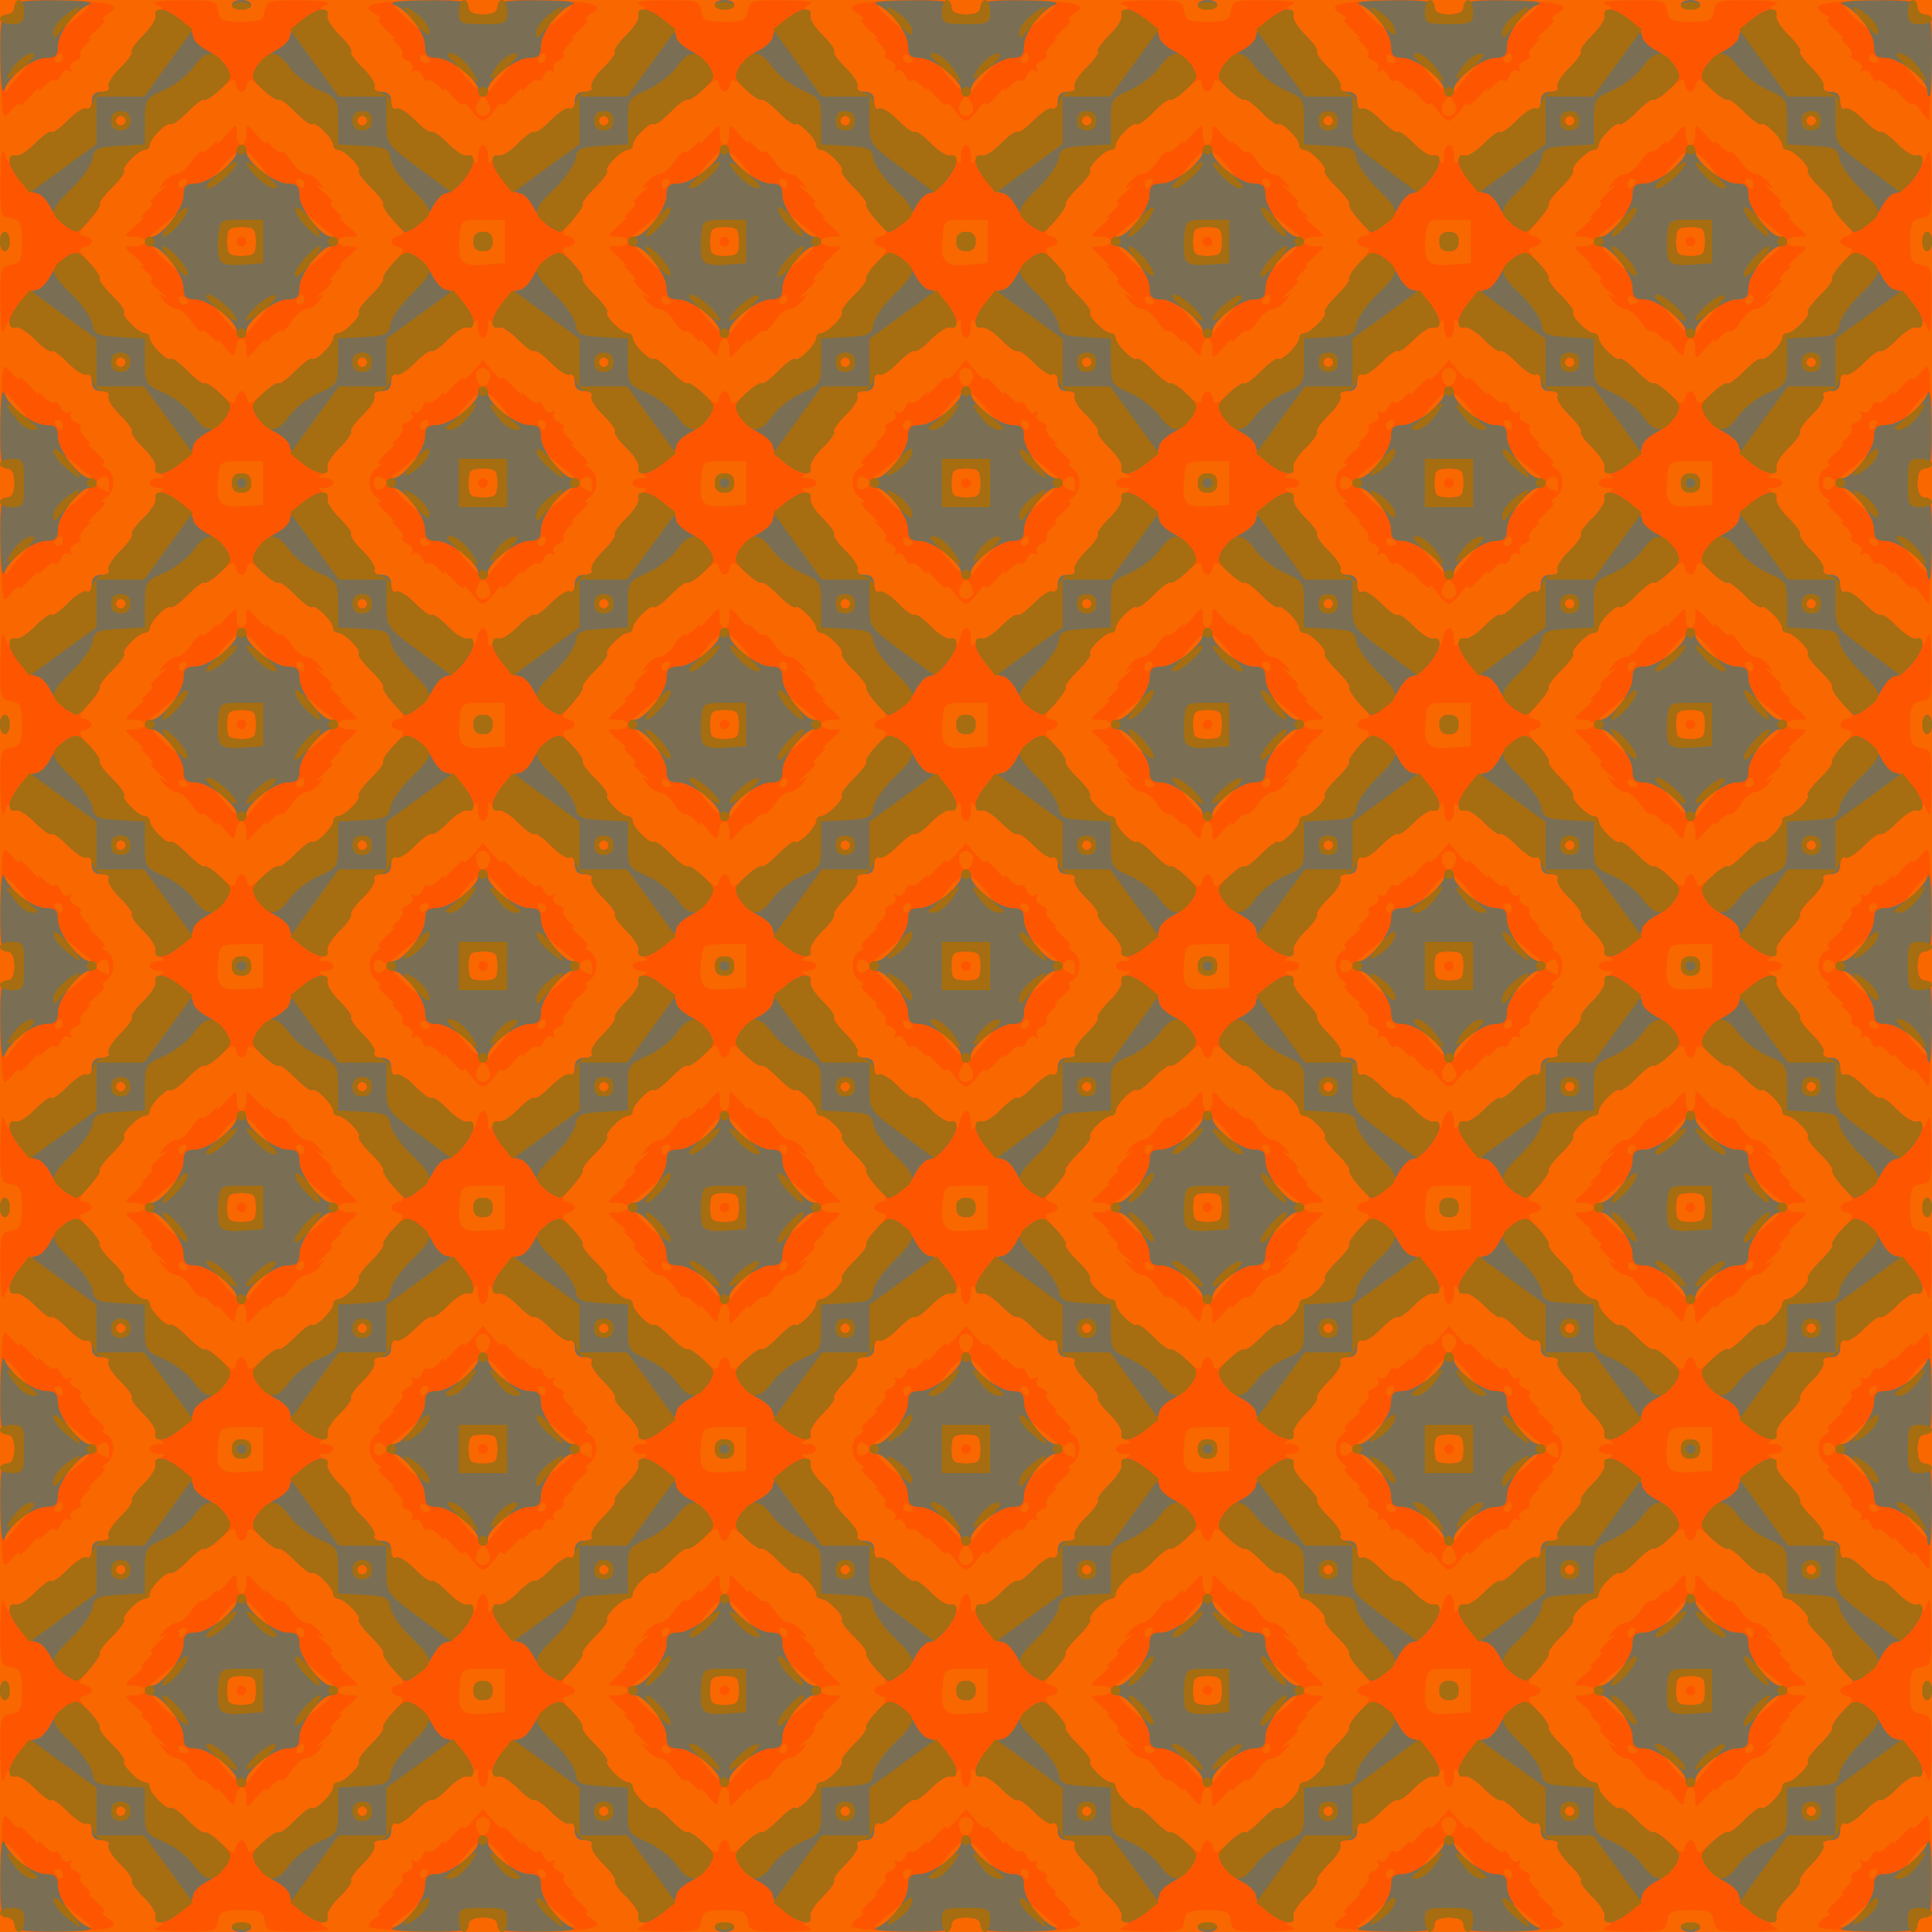 Background pattern 5 by Firkin